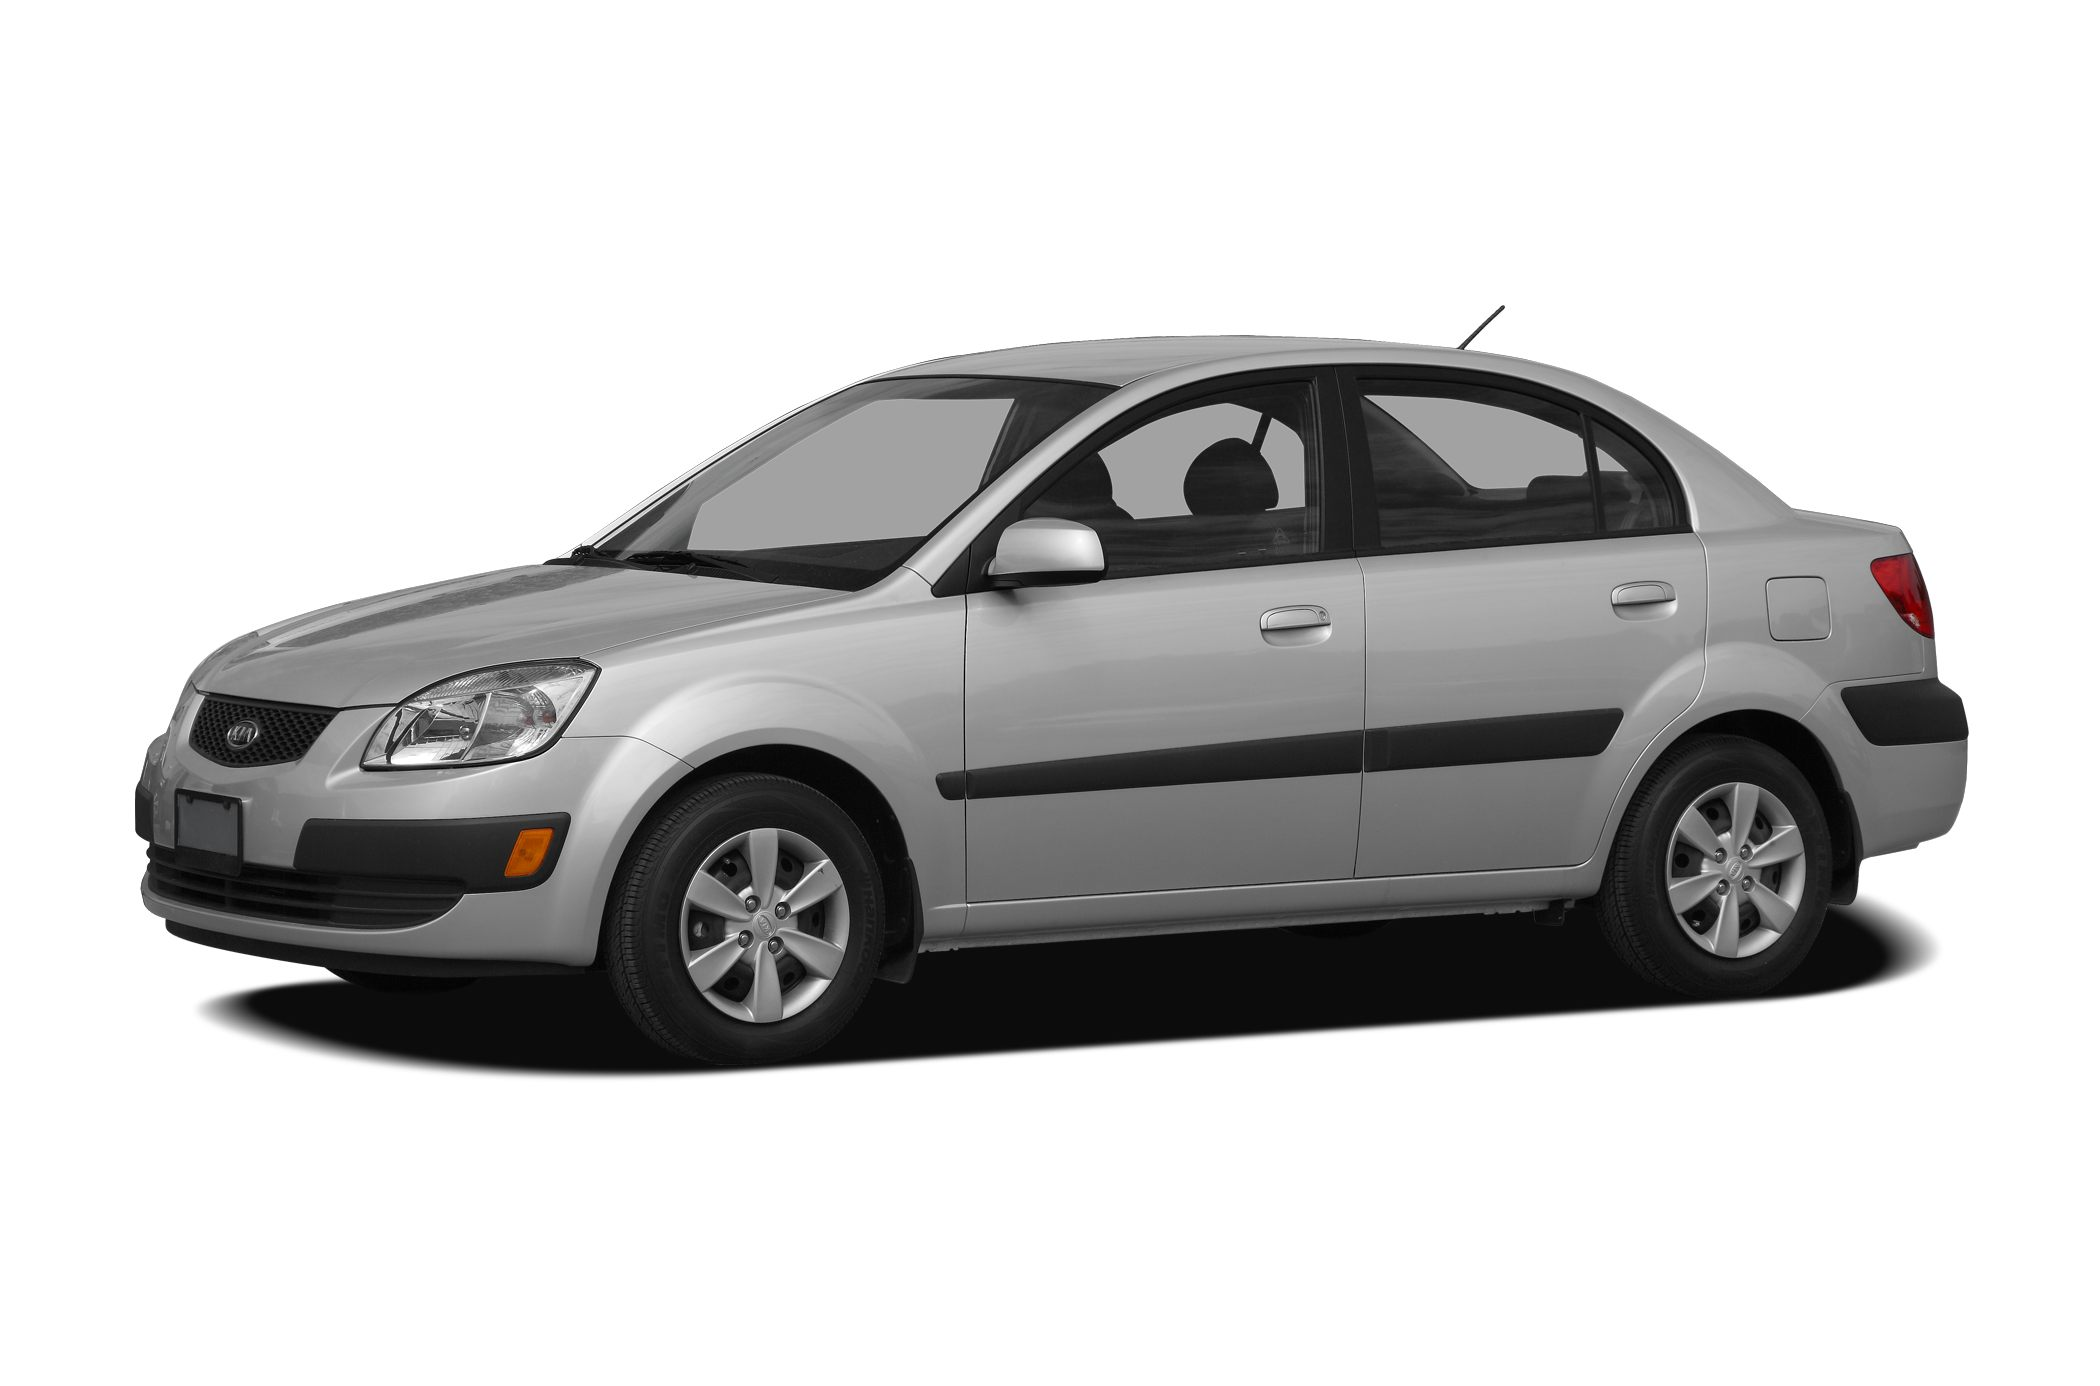 2011 Kia Rio Ii Hatchback Pictures Information And